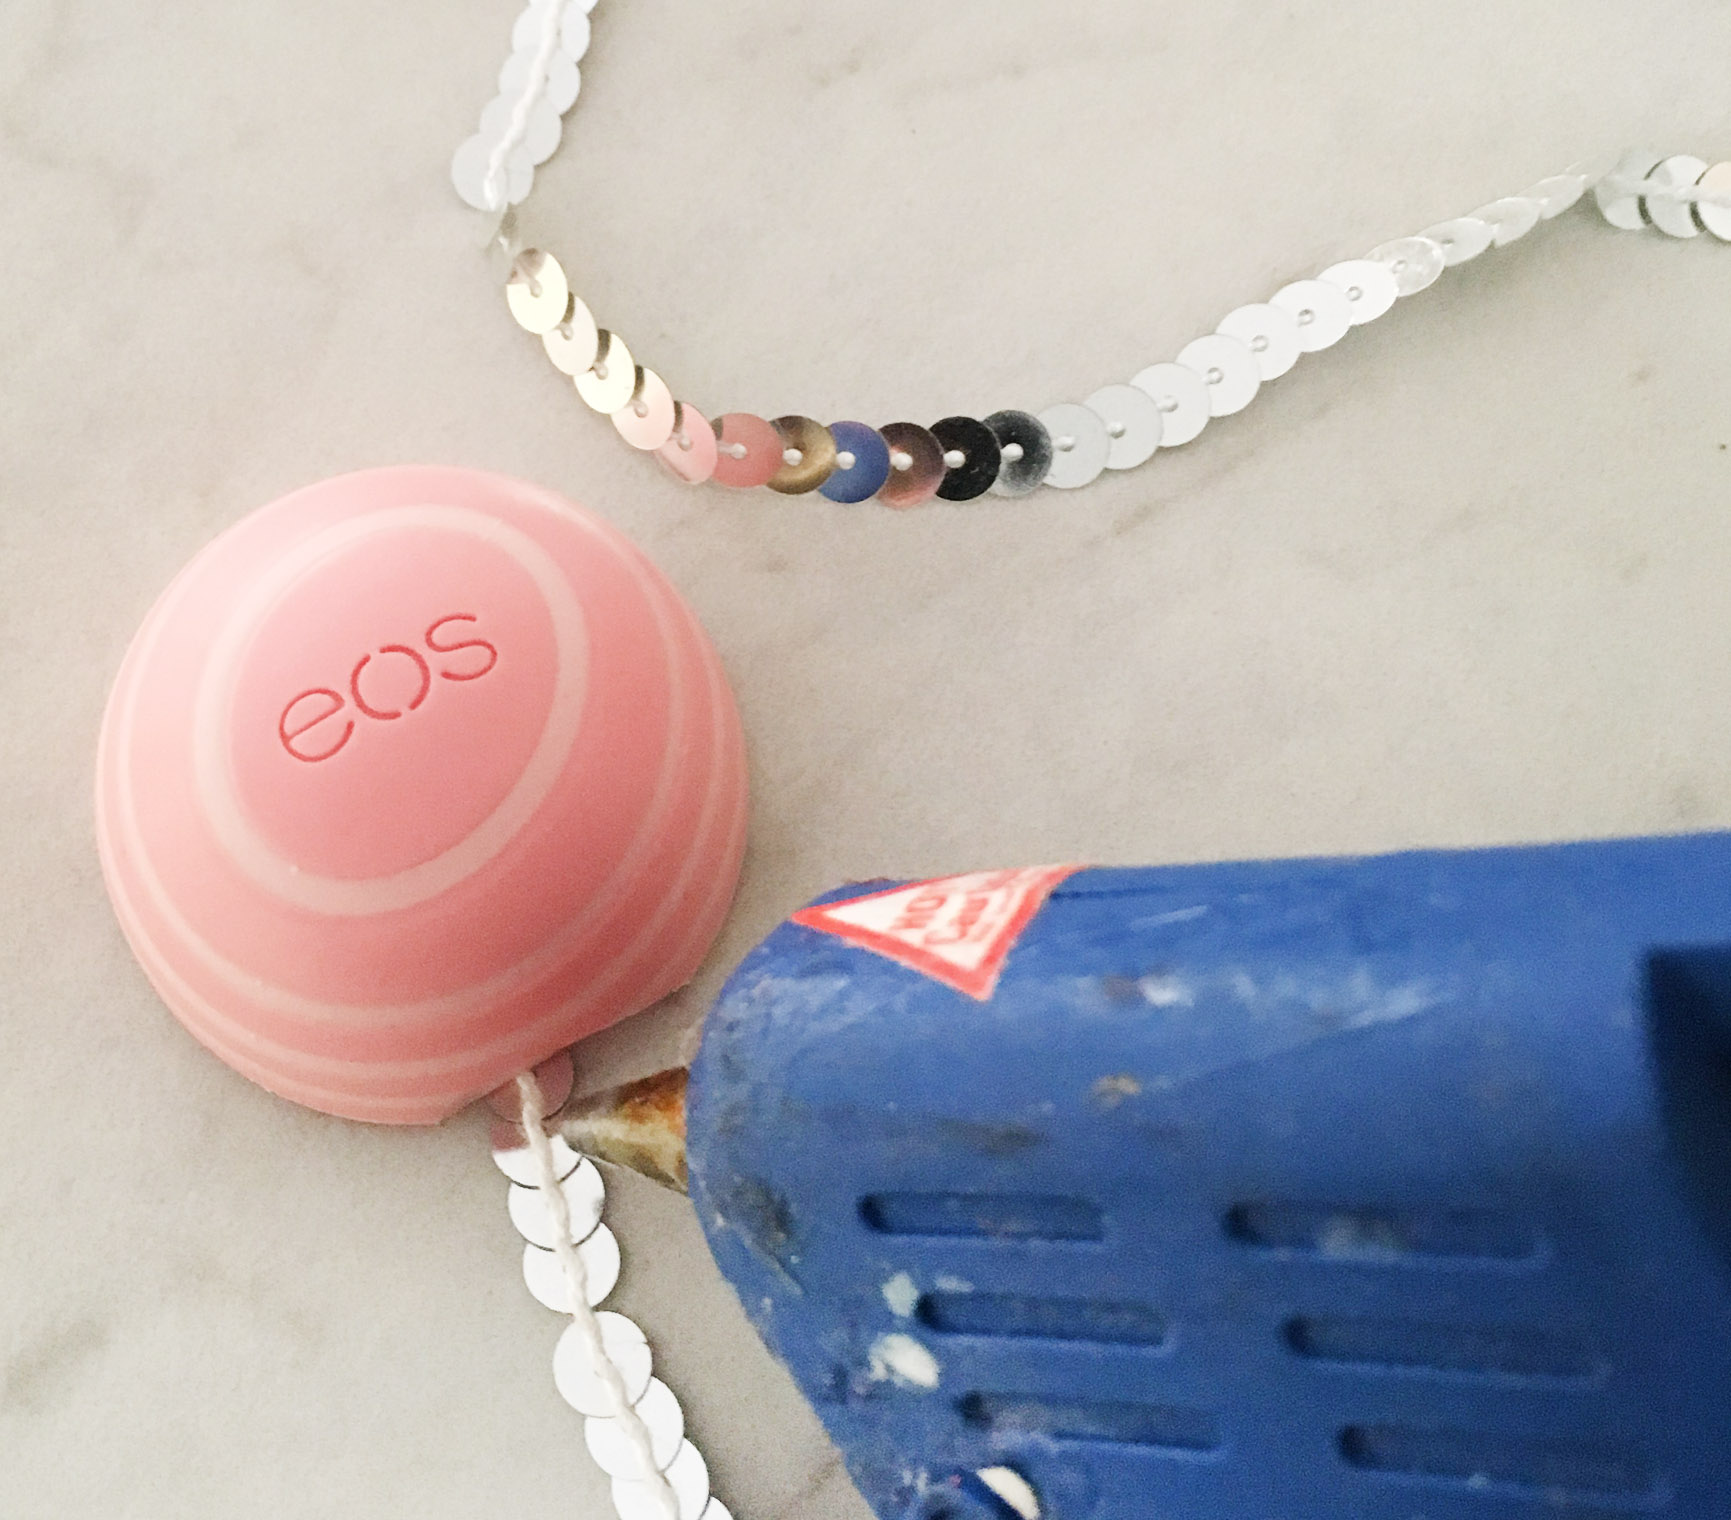 DIY Chic Sequin EOS Lip Balm